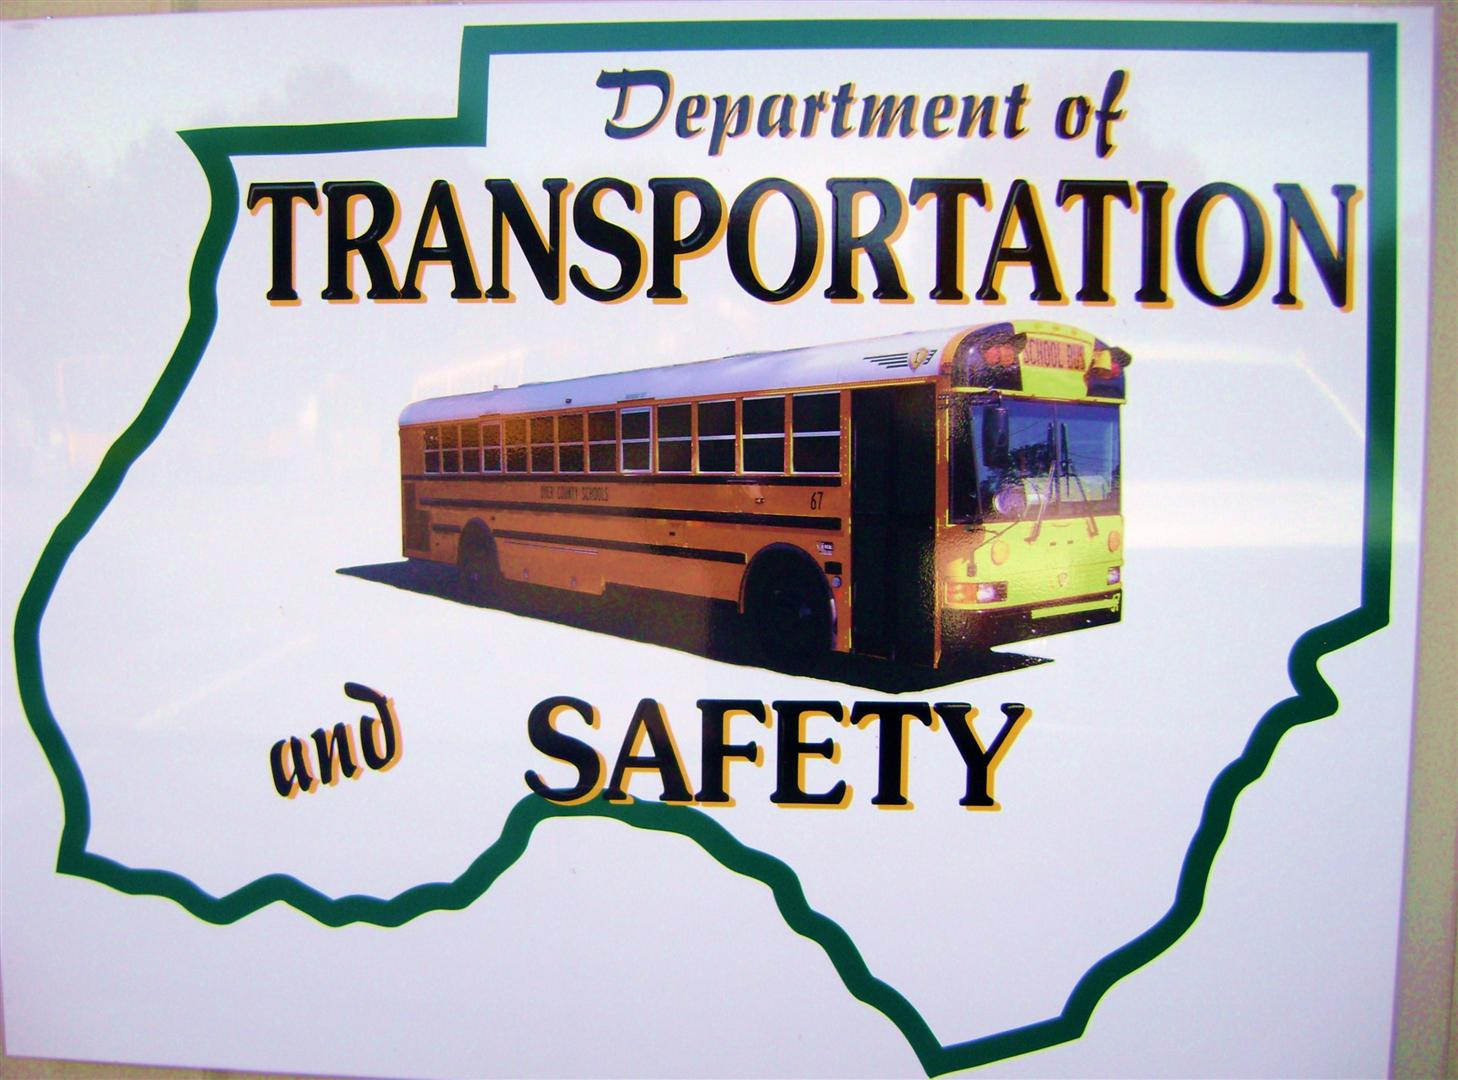 Department of Transportation and safety